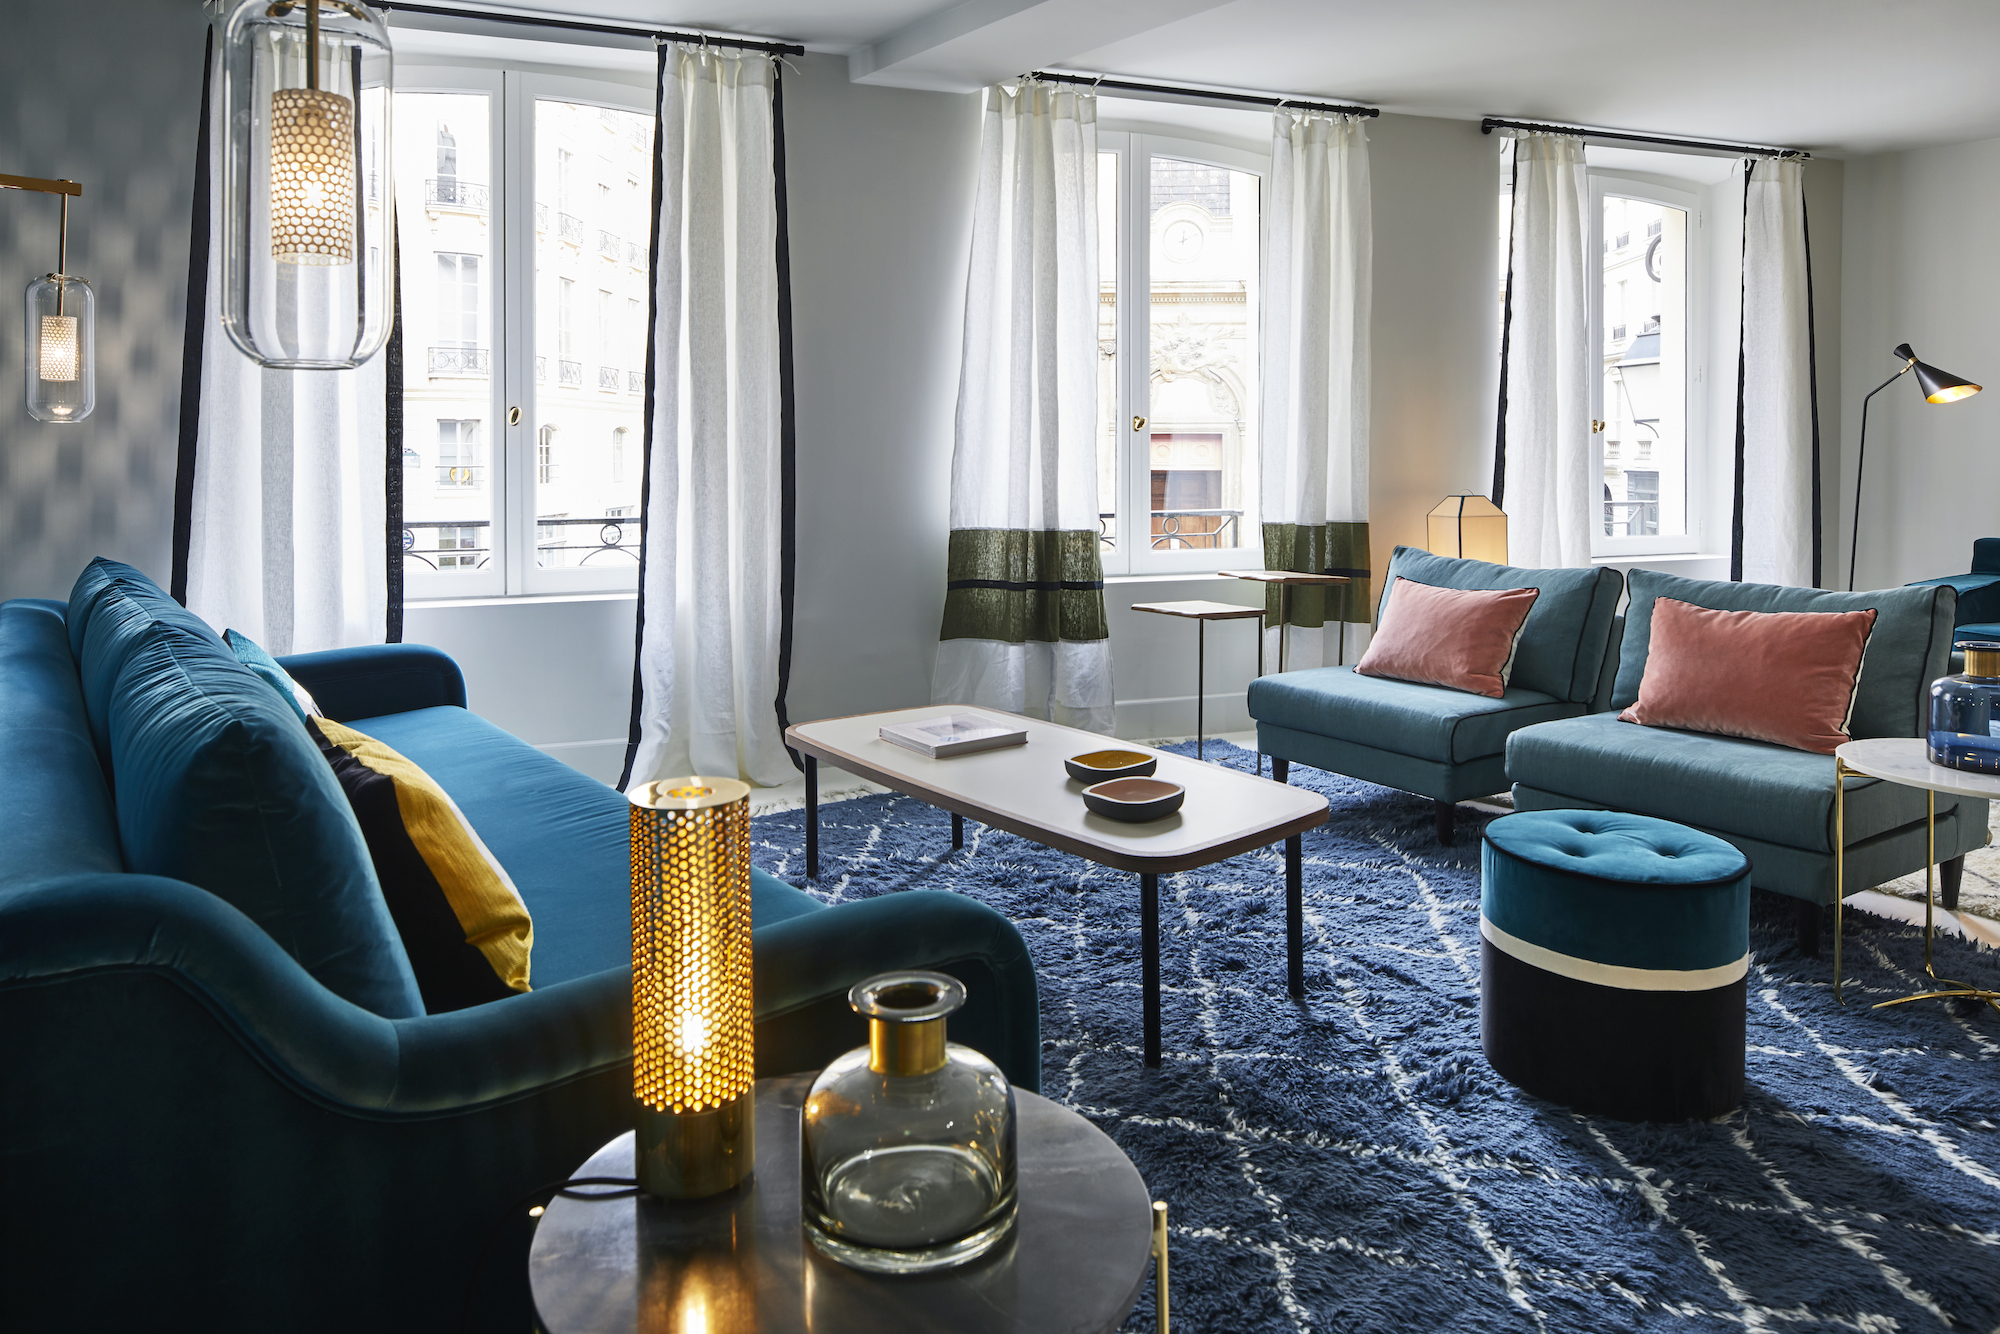 A showroom of cozy blue couches at Maison Sarah Lavoine home interior store in Paris.